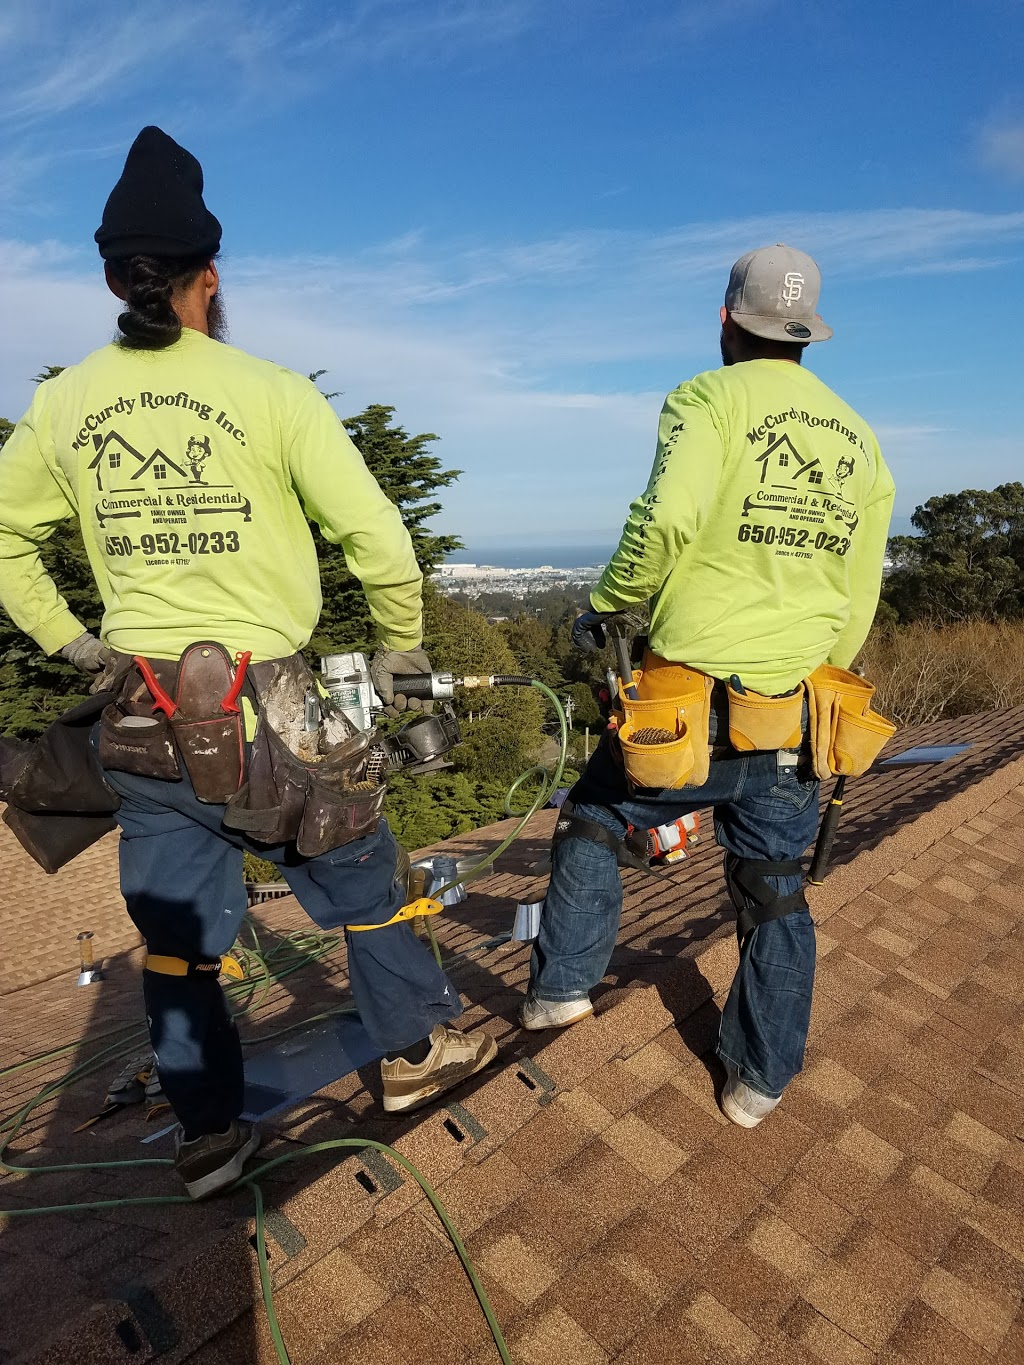 Mike McCurdy Roofing Inc. - roofing contractor  | Photo 3 of 10 | Address: 371 Shaw Rd, South San Francisco, CA 94080, USA | Phone: (650) 952-0233